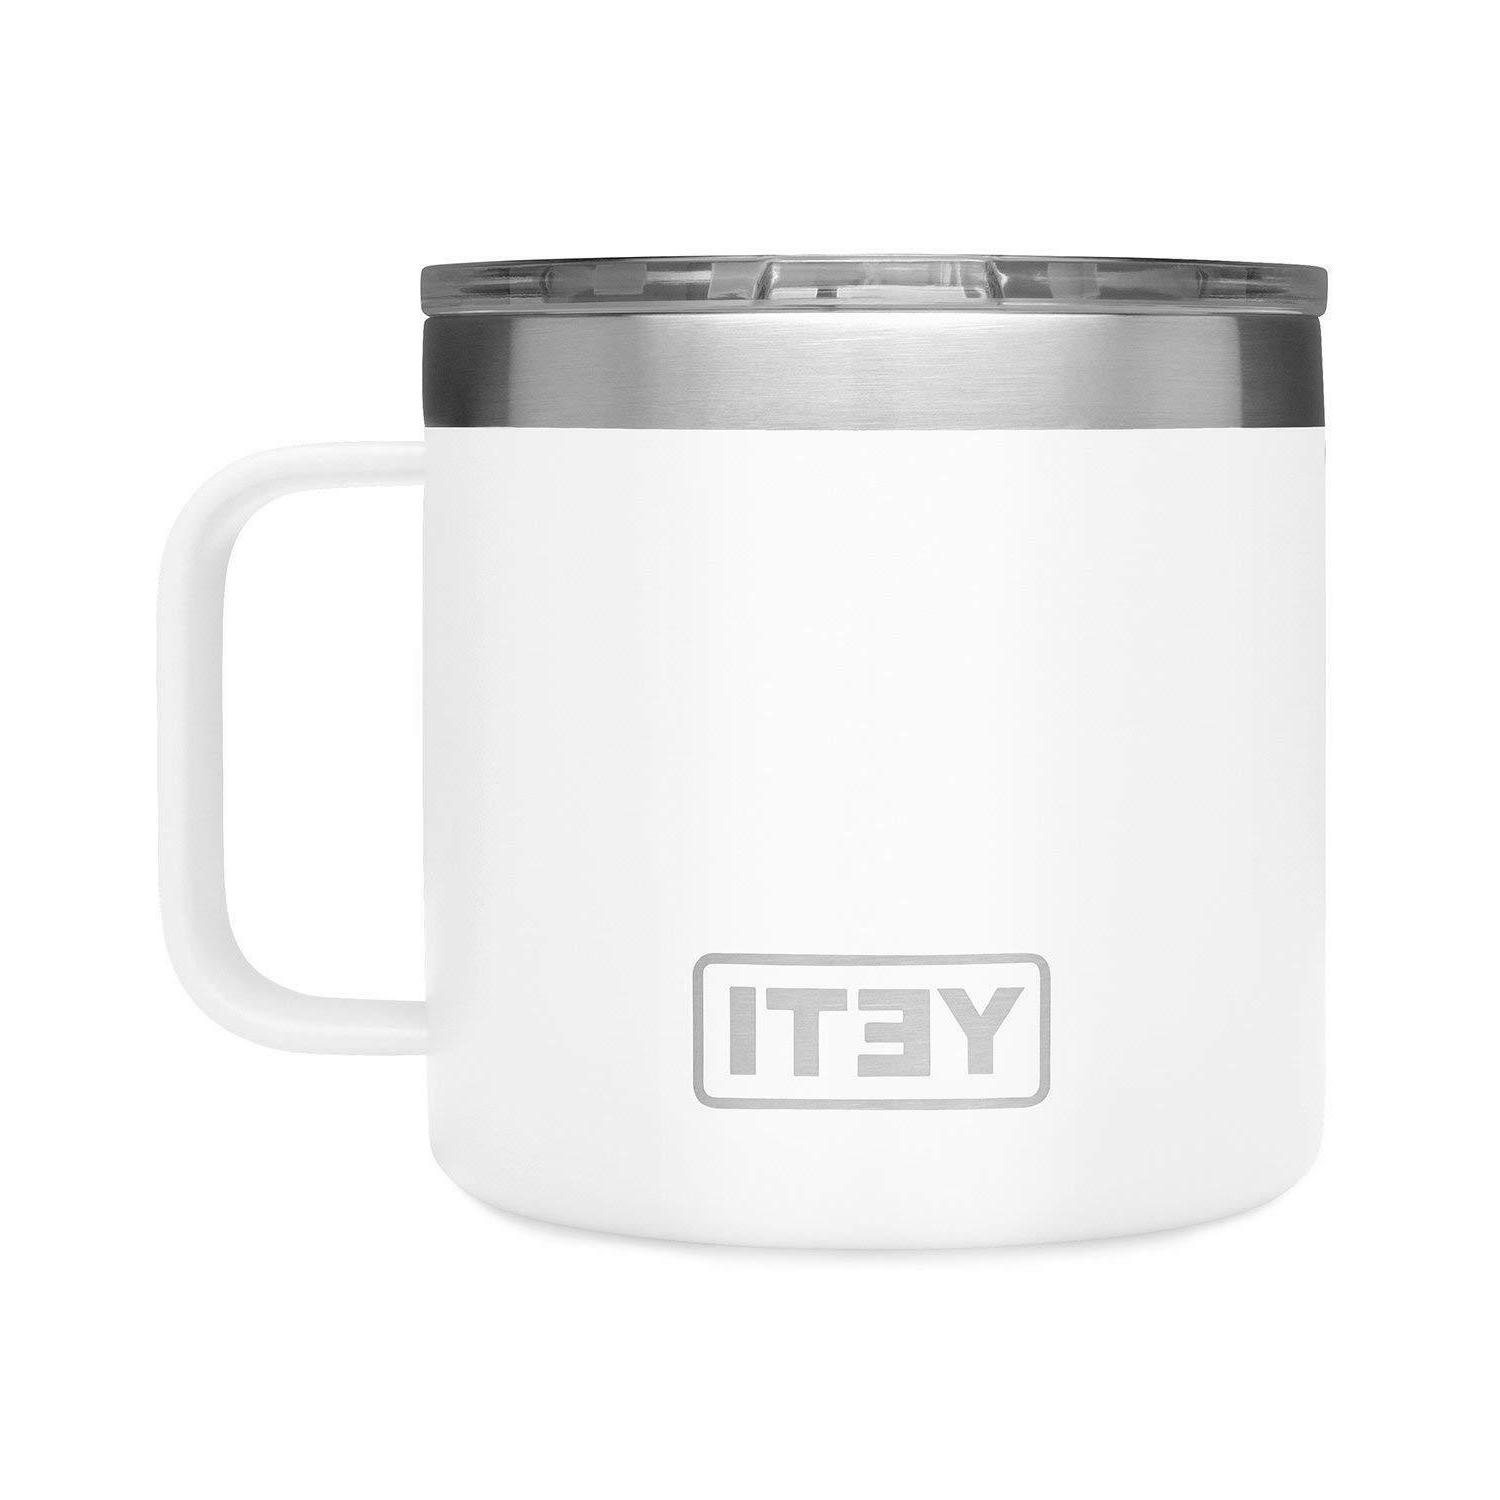 YETI oz Stainless Steel Insulated Mug with Hot